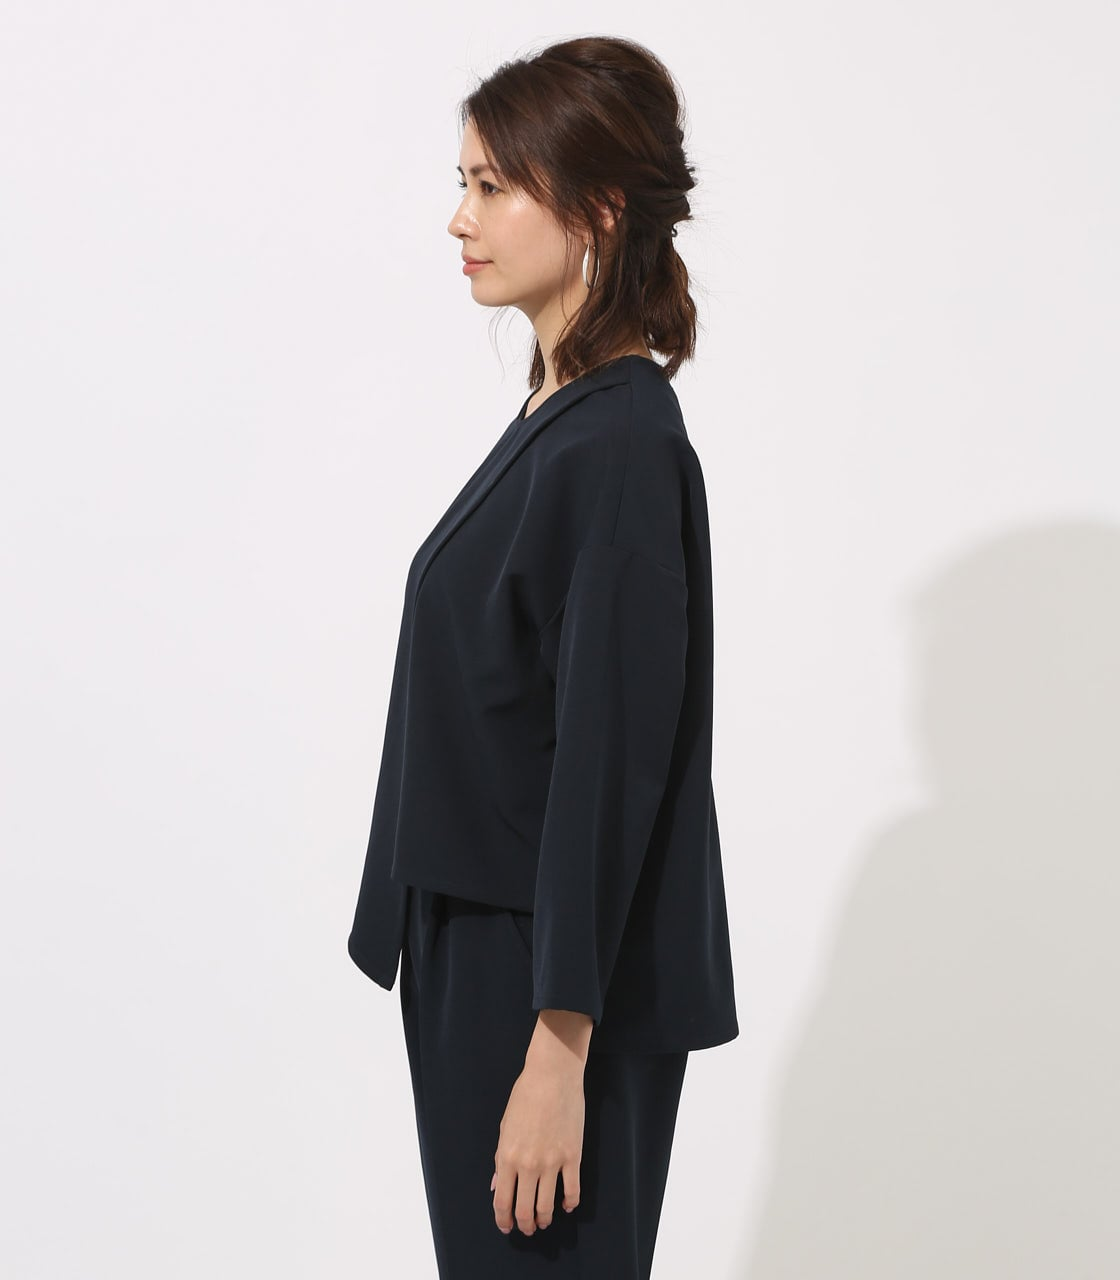 【AZUL BY MOUSSY】LAYERED IRREGULAR HEM TOPS 詳細画像 NVY 6